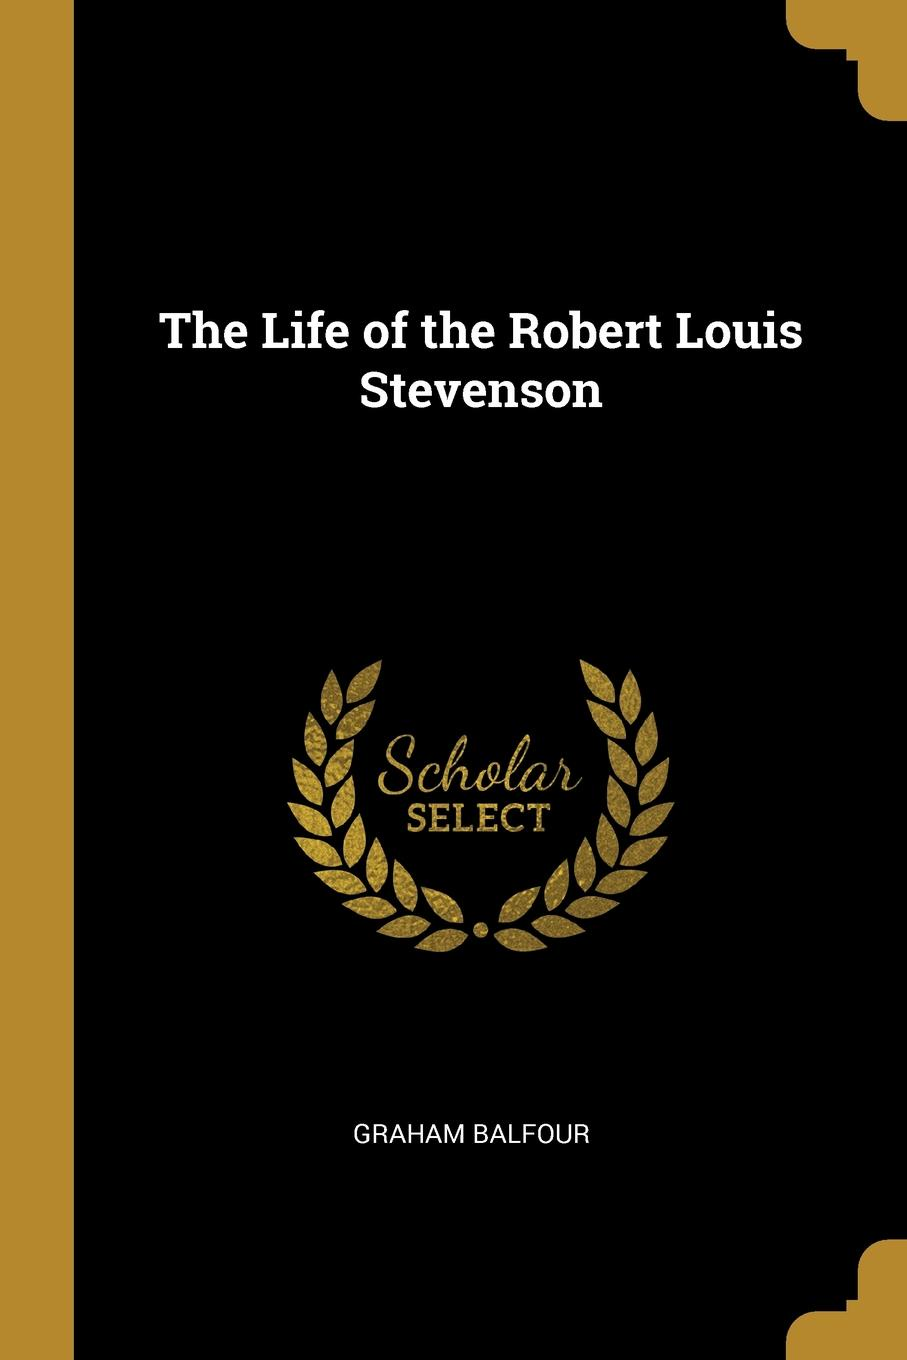 Graham Balfour. The Life of the Robert Louis Stevenson